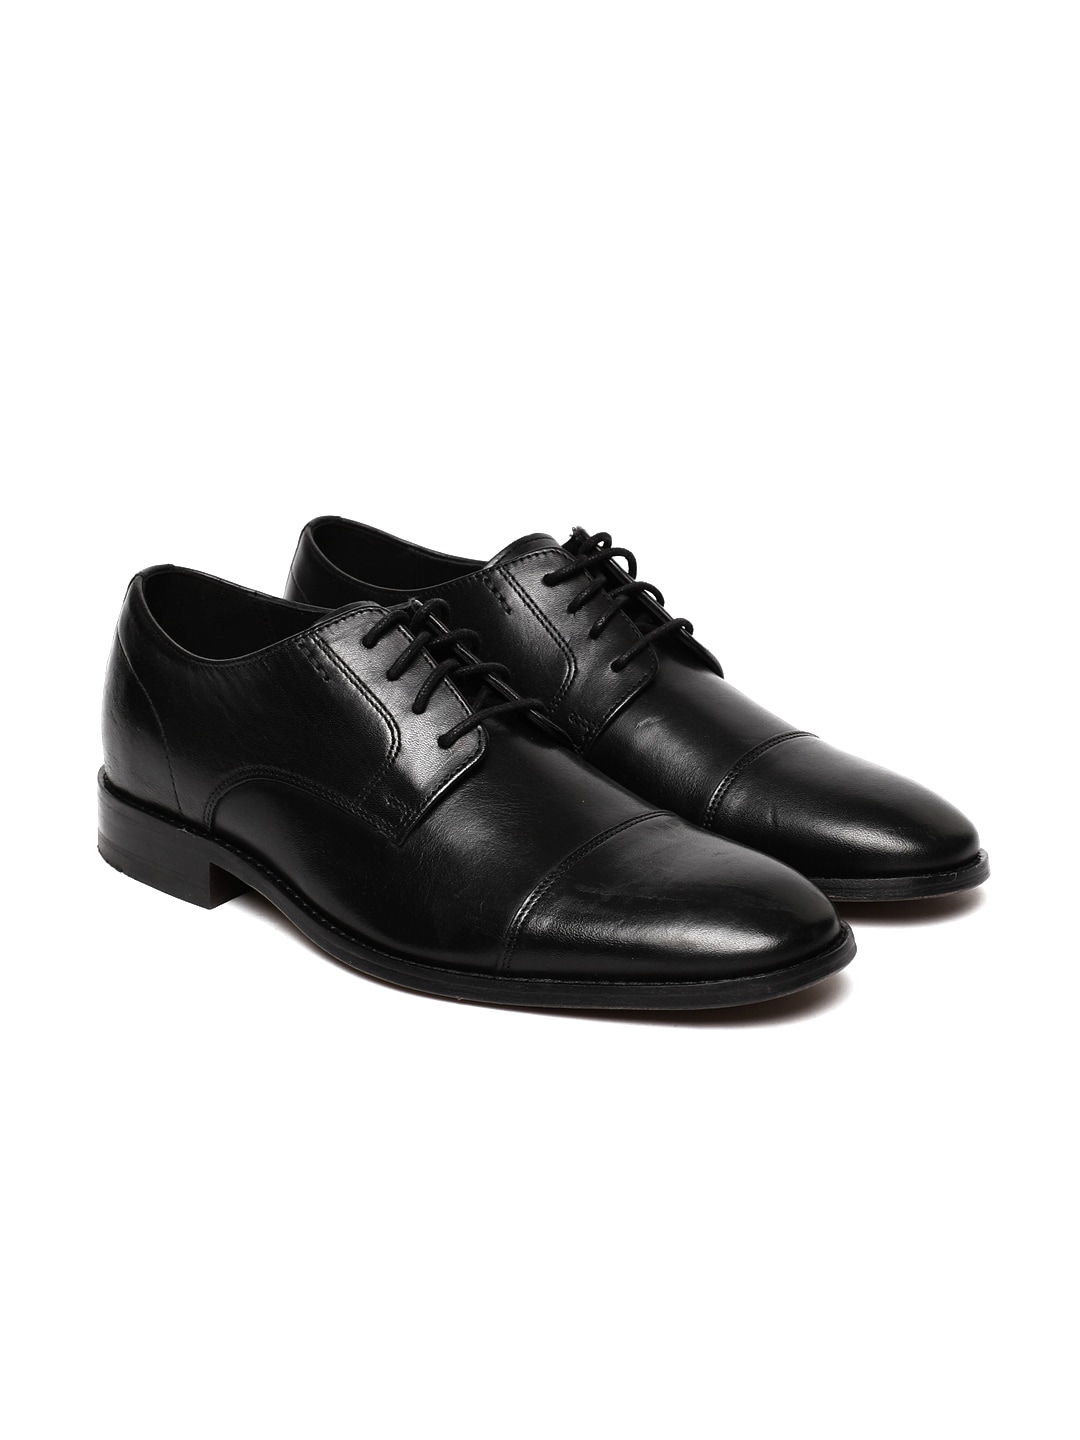 India Online Myntra Shoes Exclusive Store In Clarks n7wfRqXz